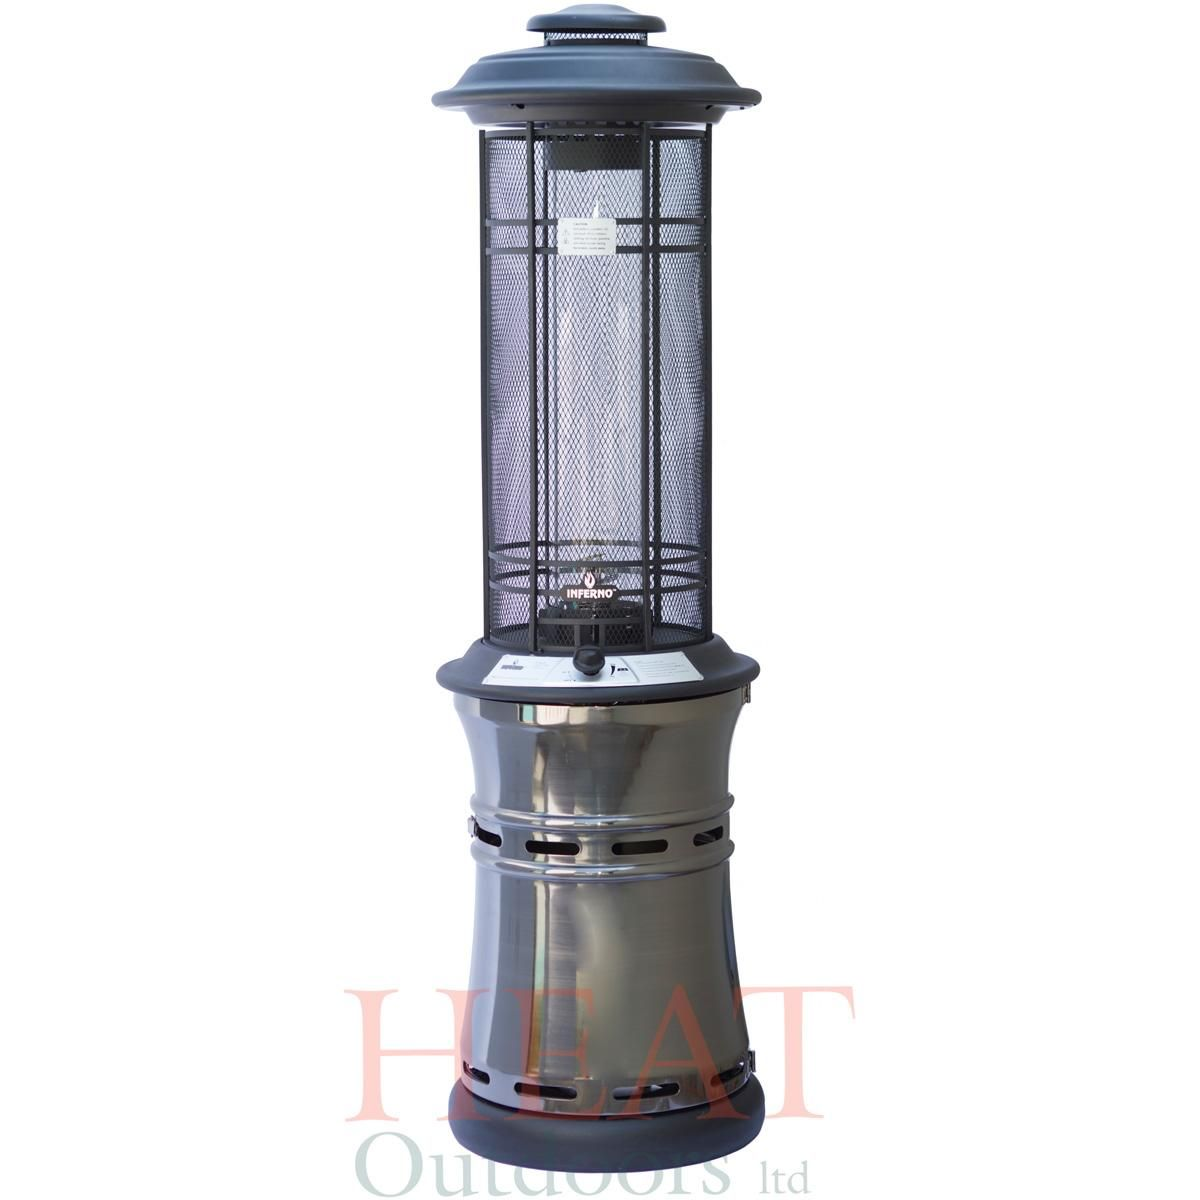 patio heaters santorini spiral flame gas patio heater heat outdoors - Outdoor Propane Heaters